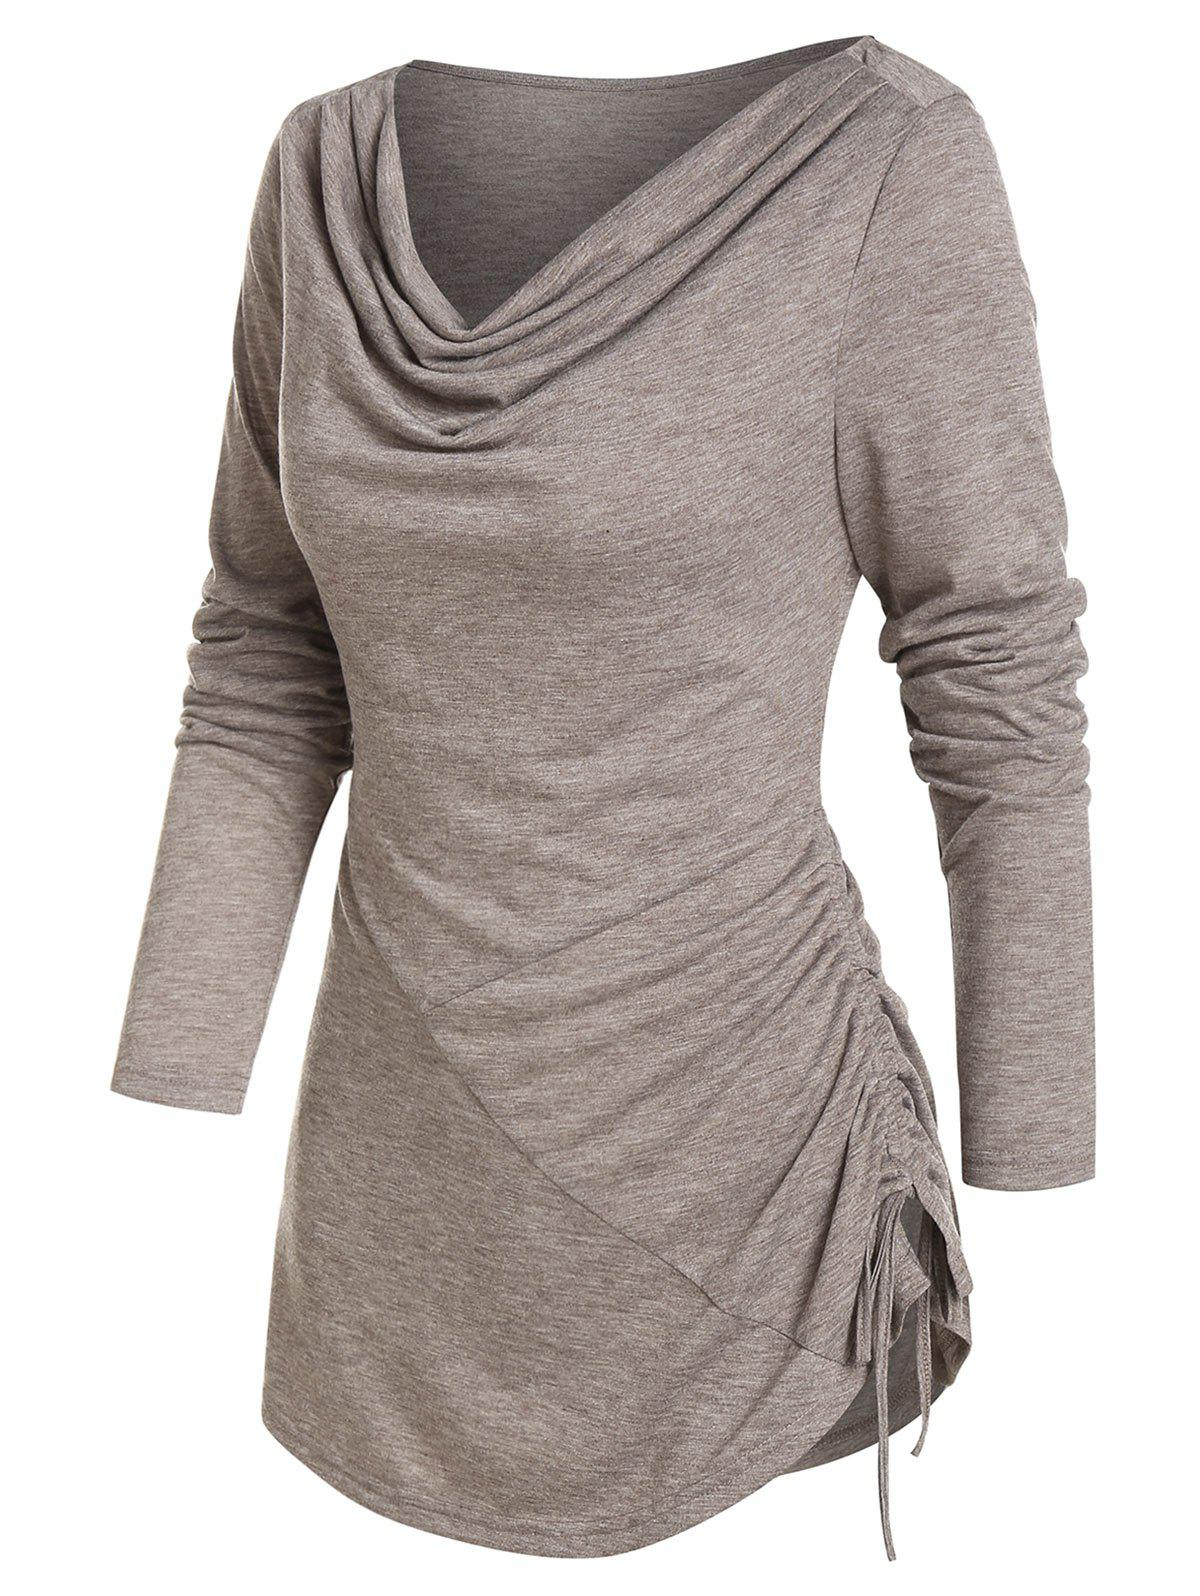 Cowl Neck Cinched Hem Asymmetrical T Shirt - COFFEE 2XL